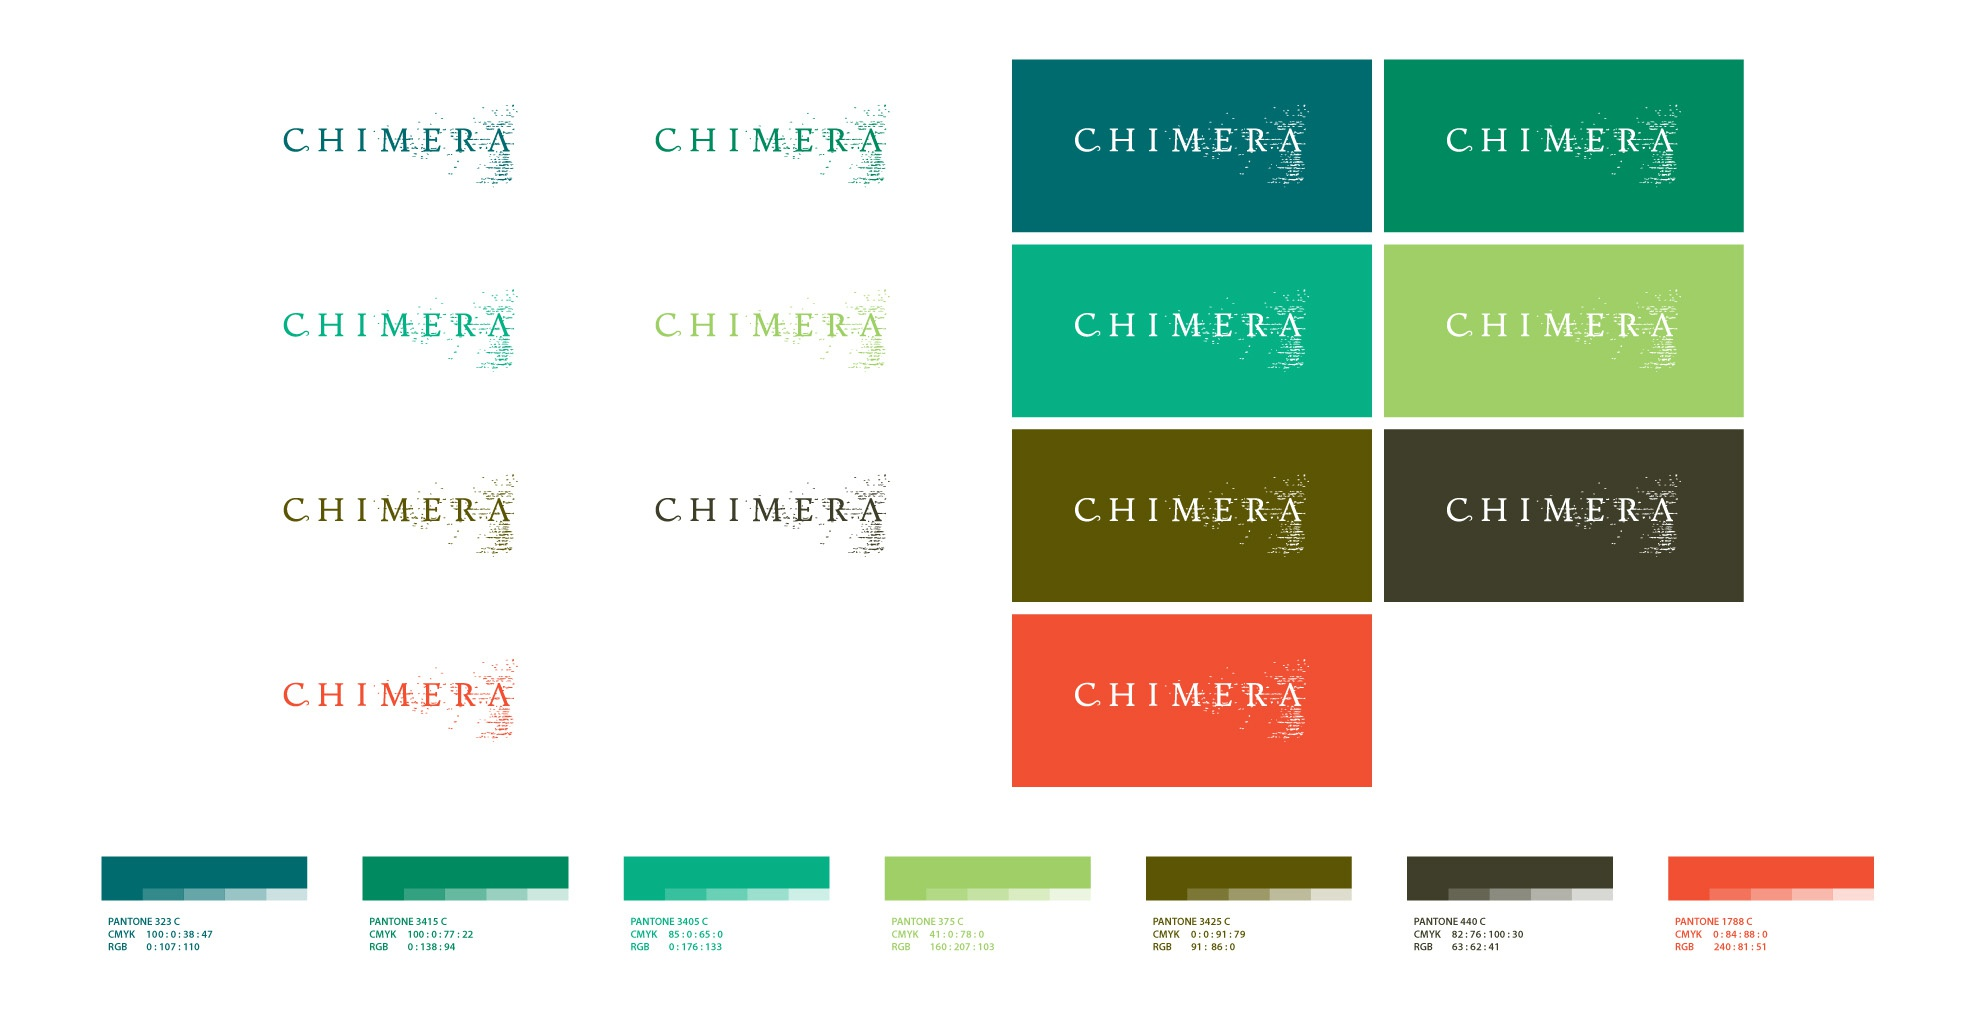 Chimera colour system